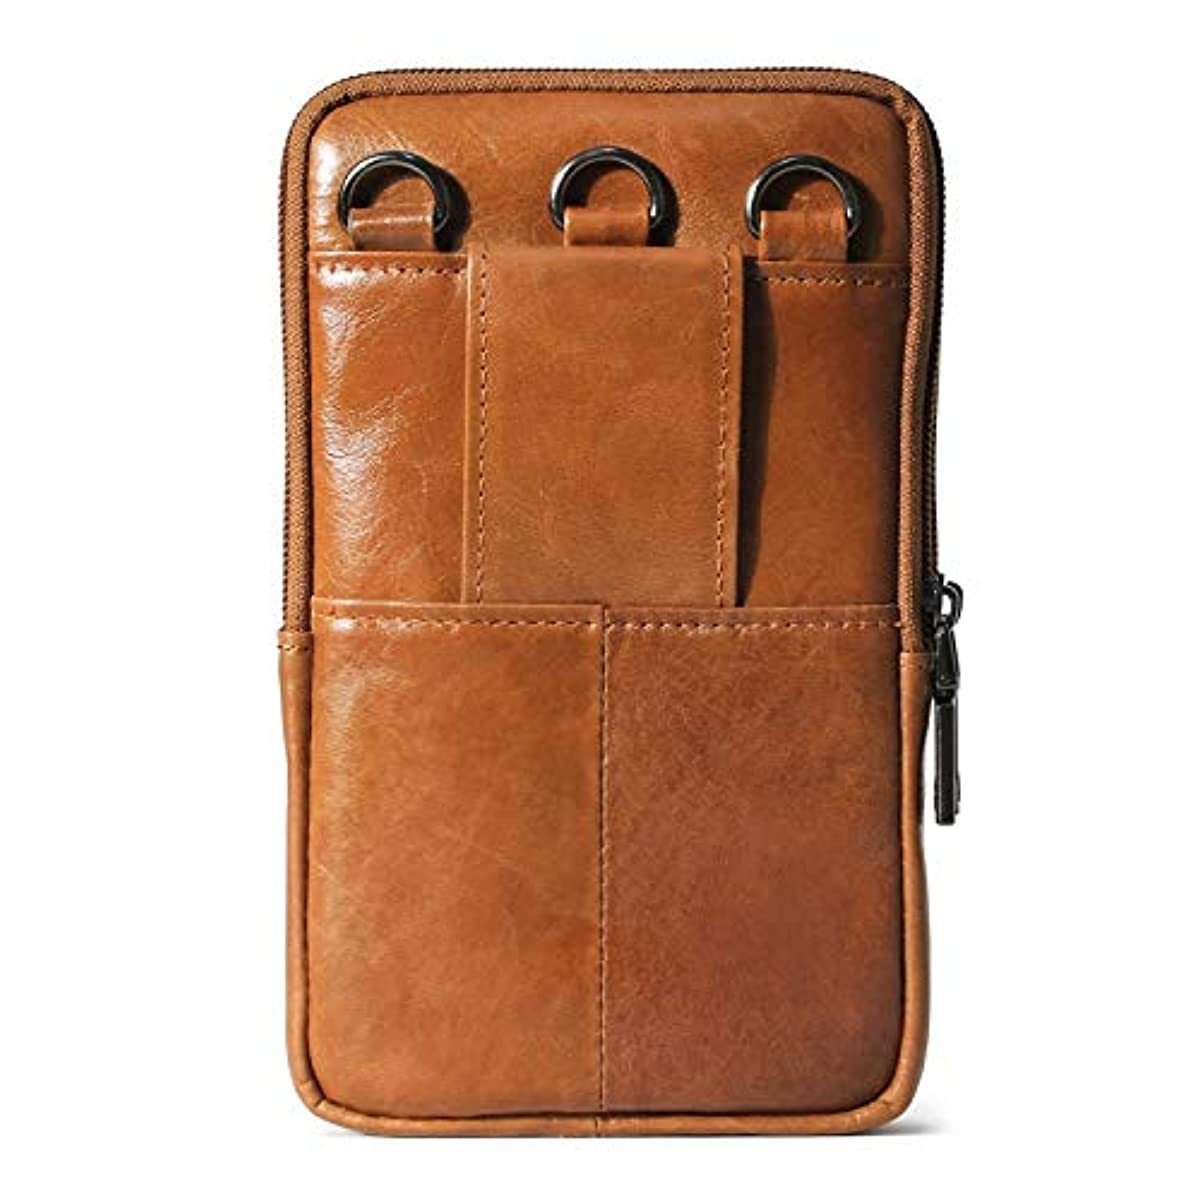 Phone purse iphone 11 Pro Max Leather Cell phone Holster Case Belt Loop Pouch Travel Messenger Bag 2184 - ENCACC